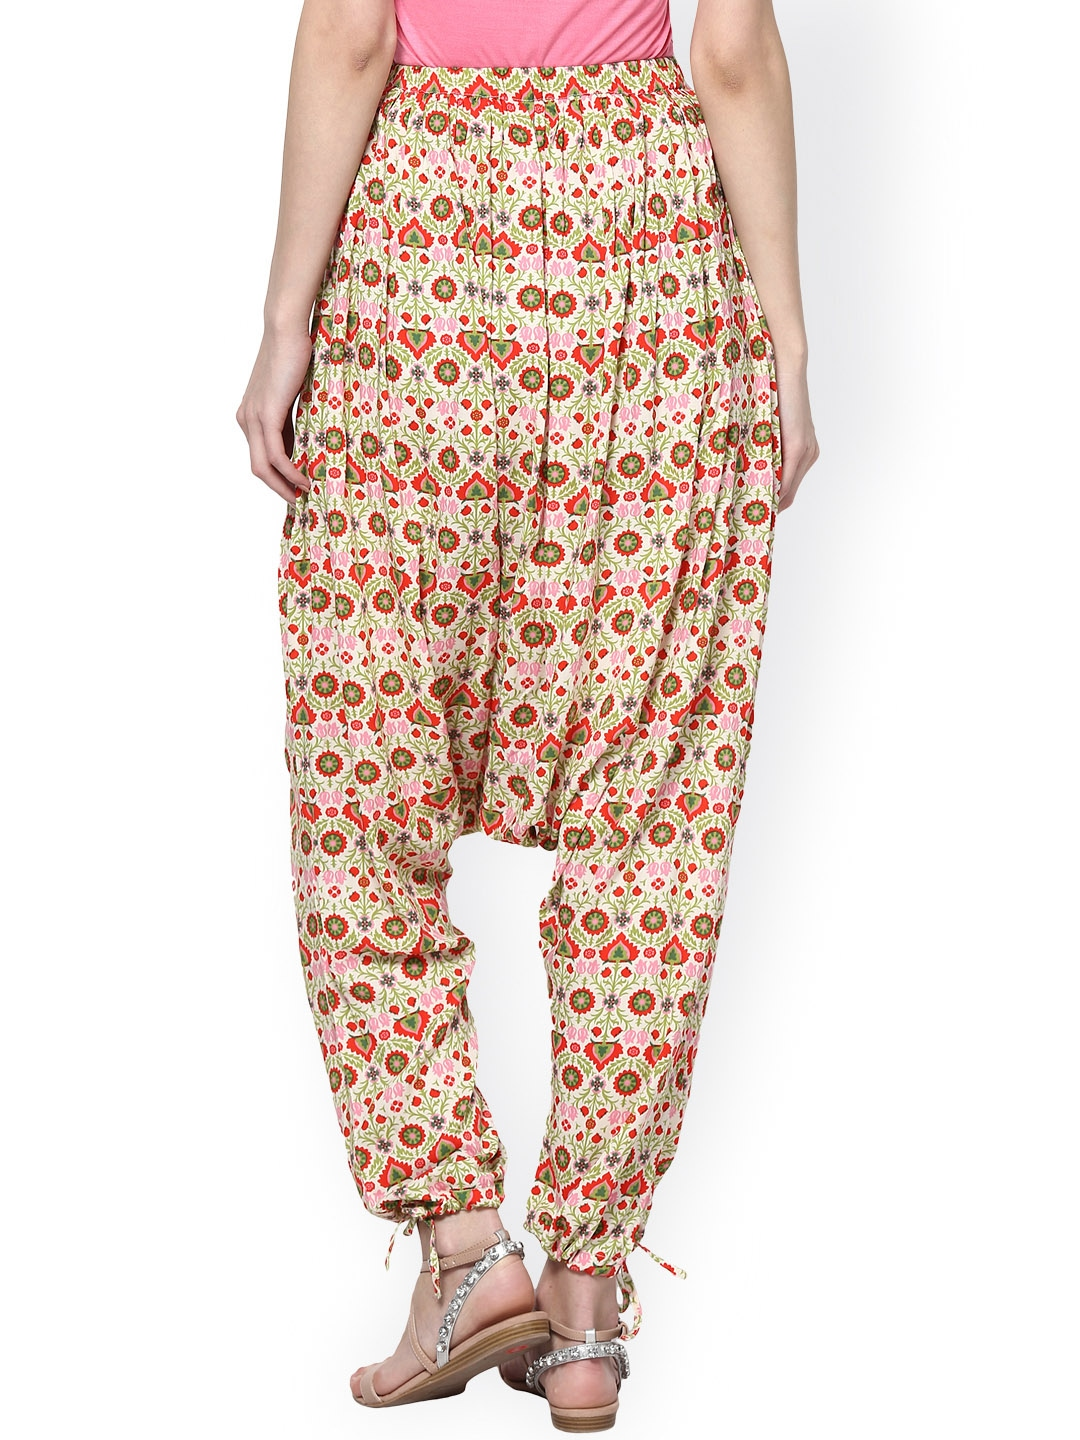 Find great deals on eBay for mens printed harem pants. Shop with confidence.